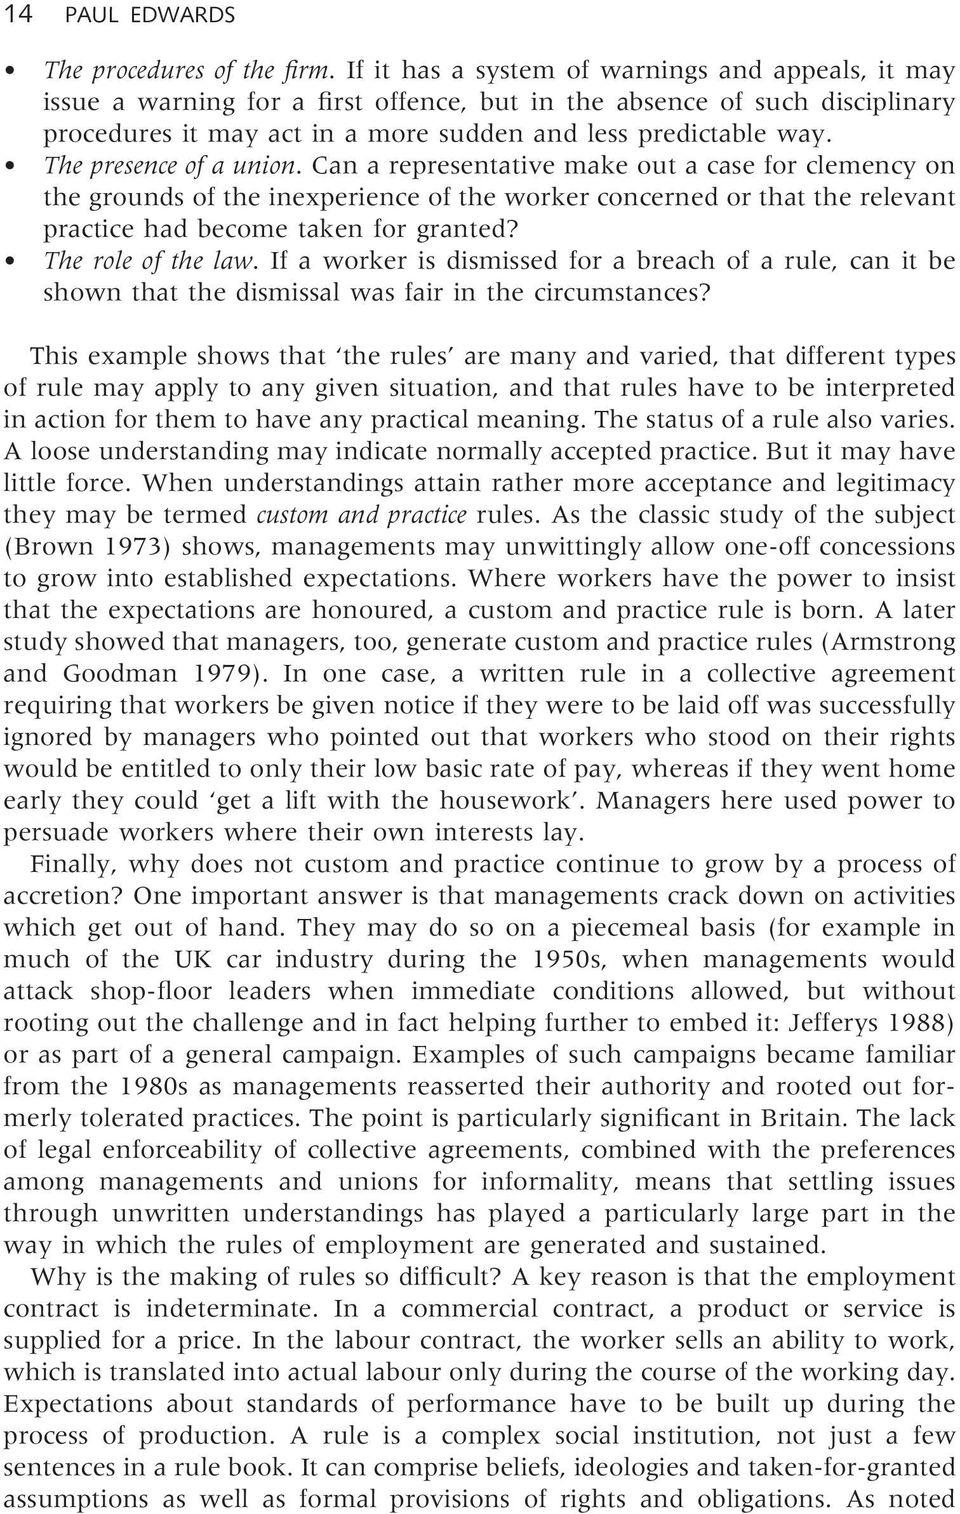 The presence of a union. Can a representative make out a case for clemency on the grounds of the inexperience of the worker concerned or that the relevant practice had become taken for granted?